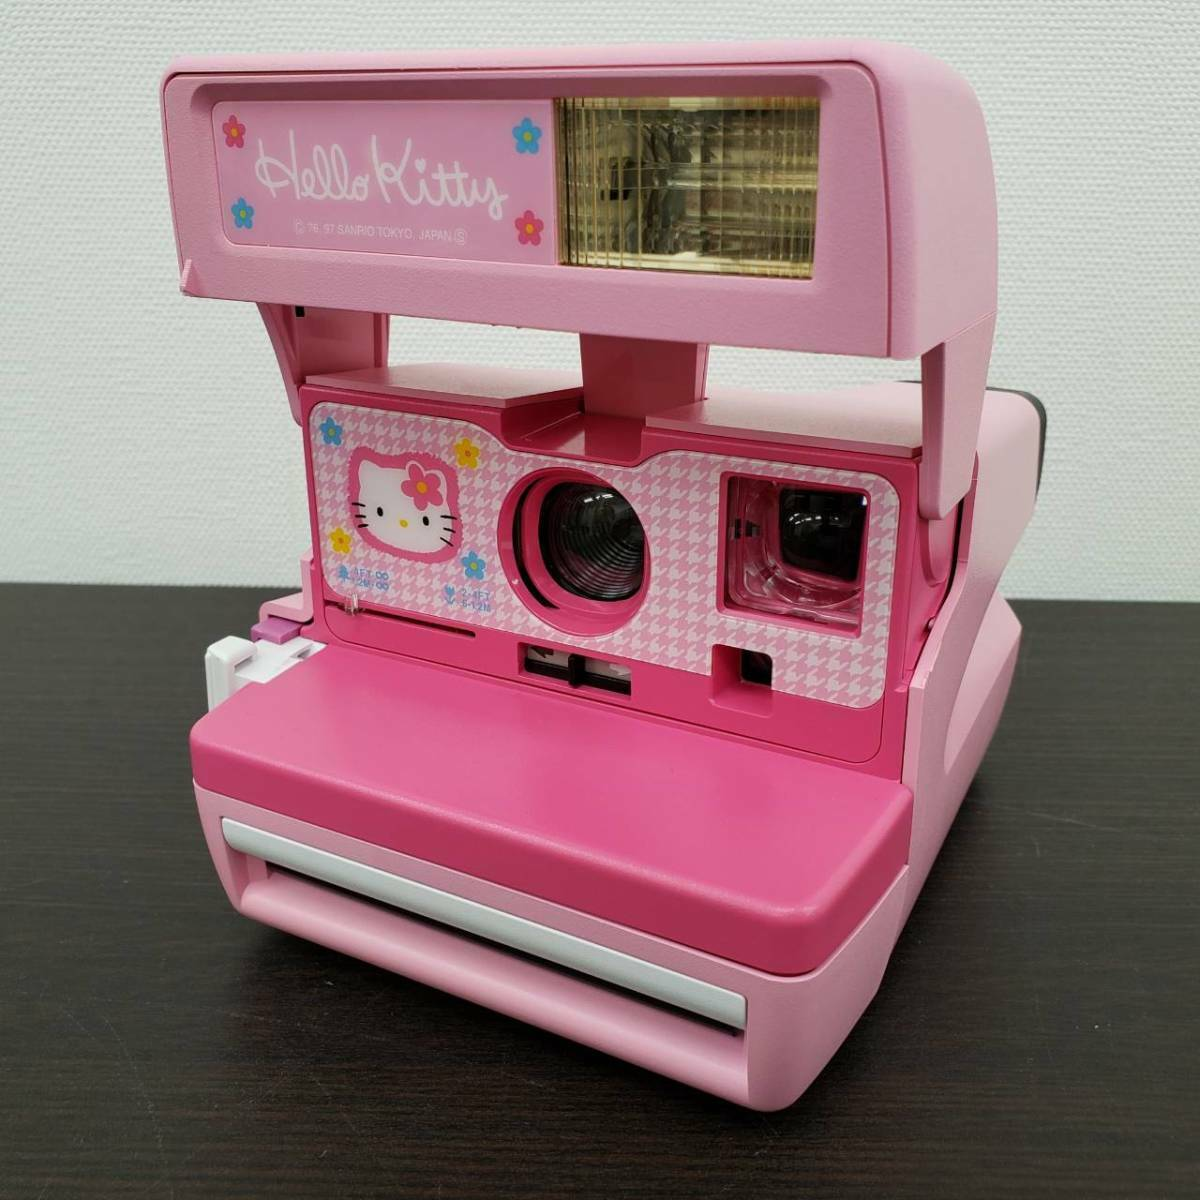 You Secretly Want This Rare, Unused Hello Kitty Polaroid 600 for $3,215